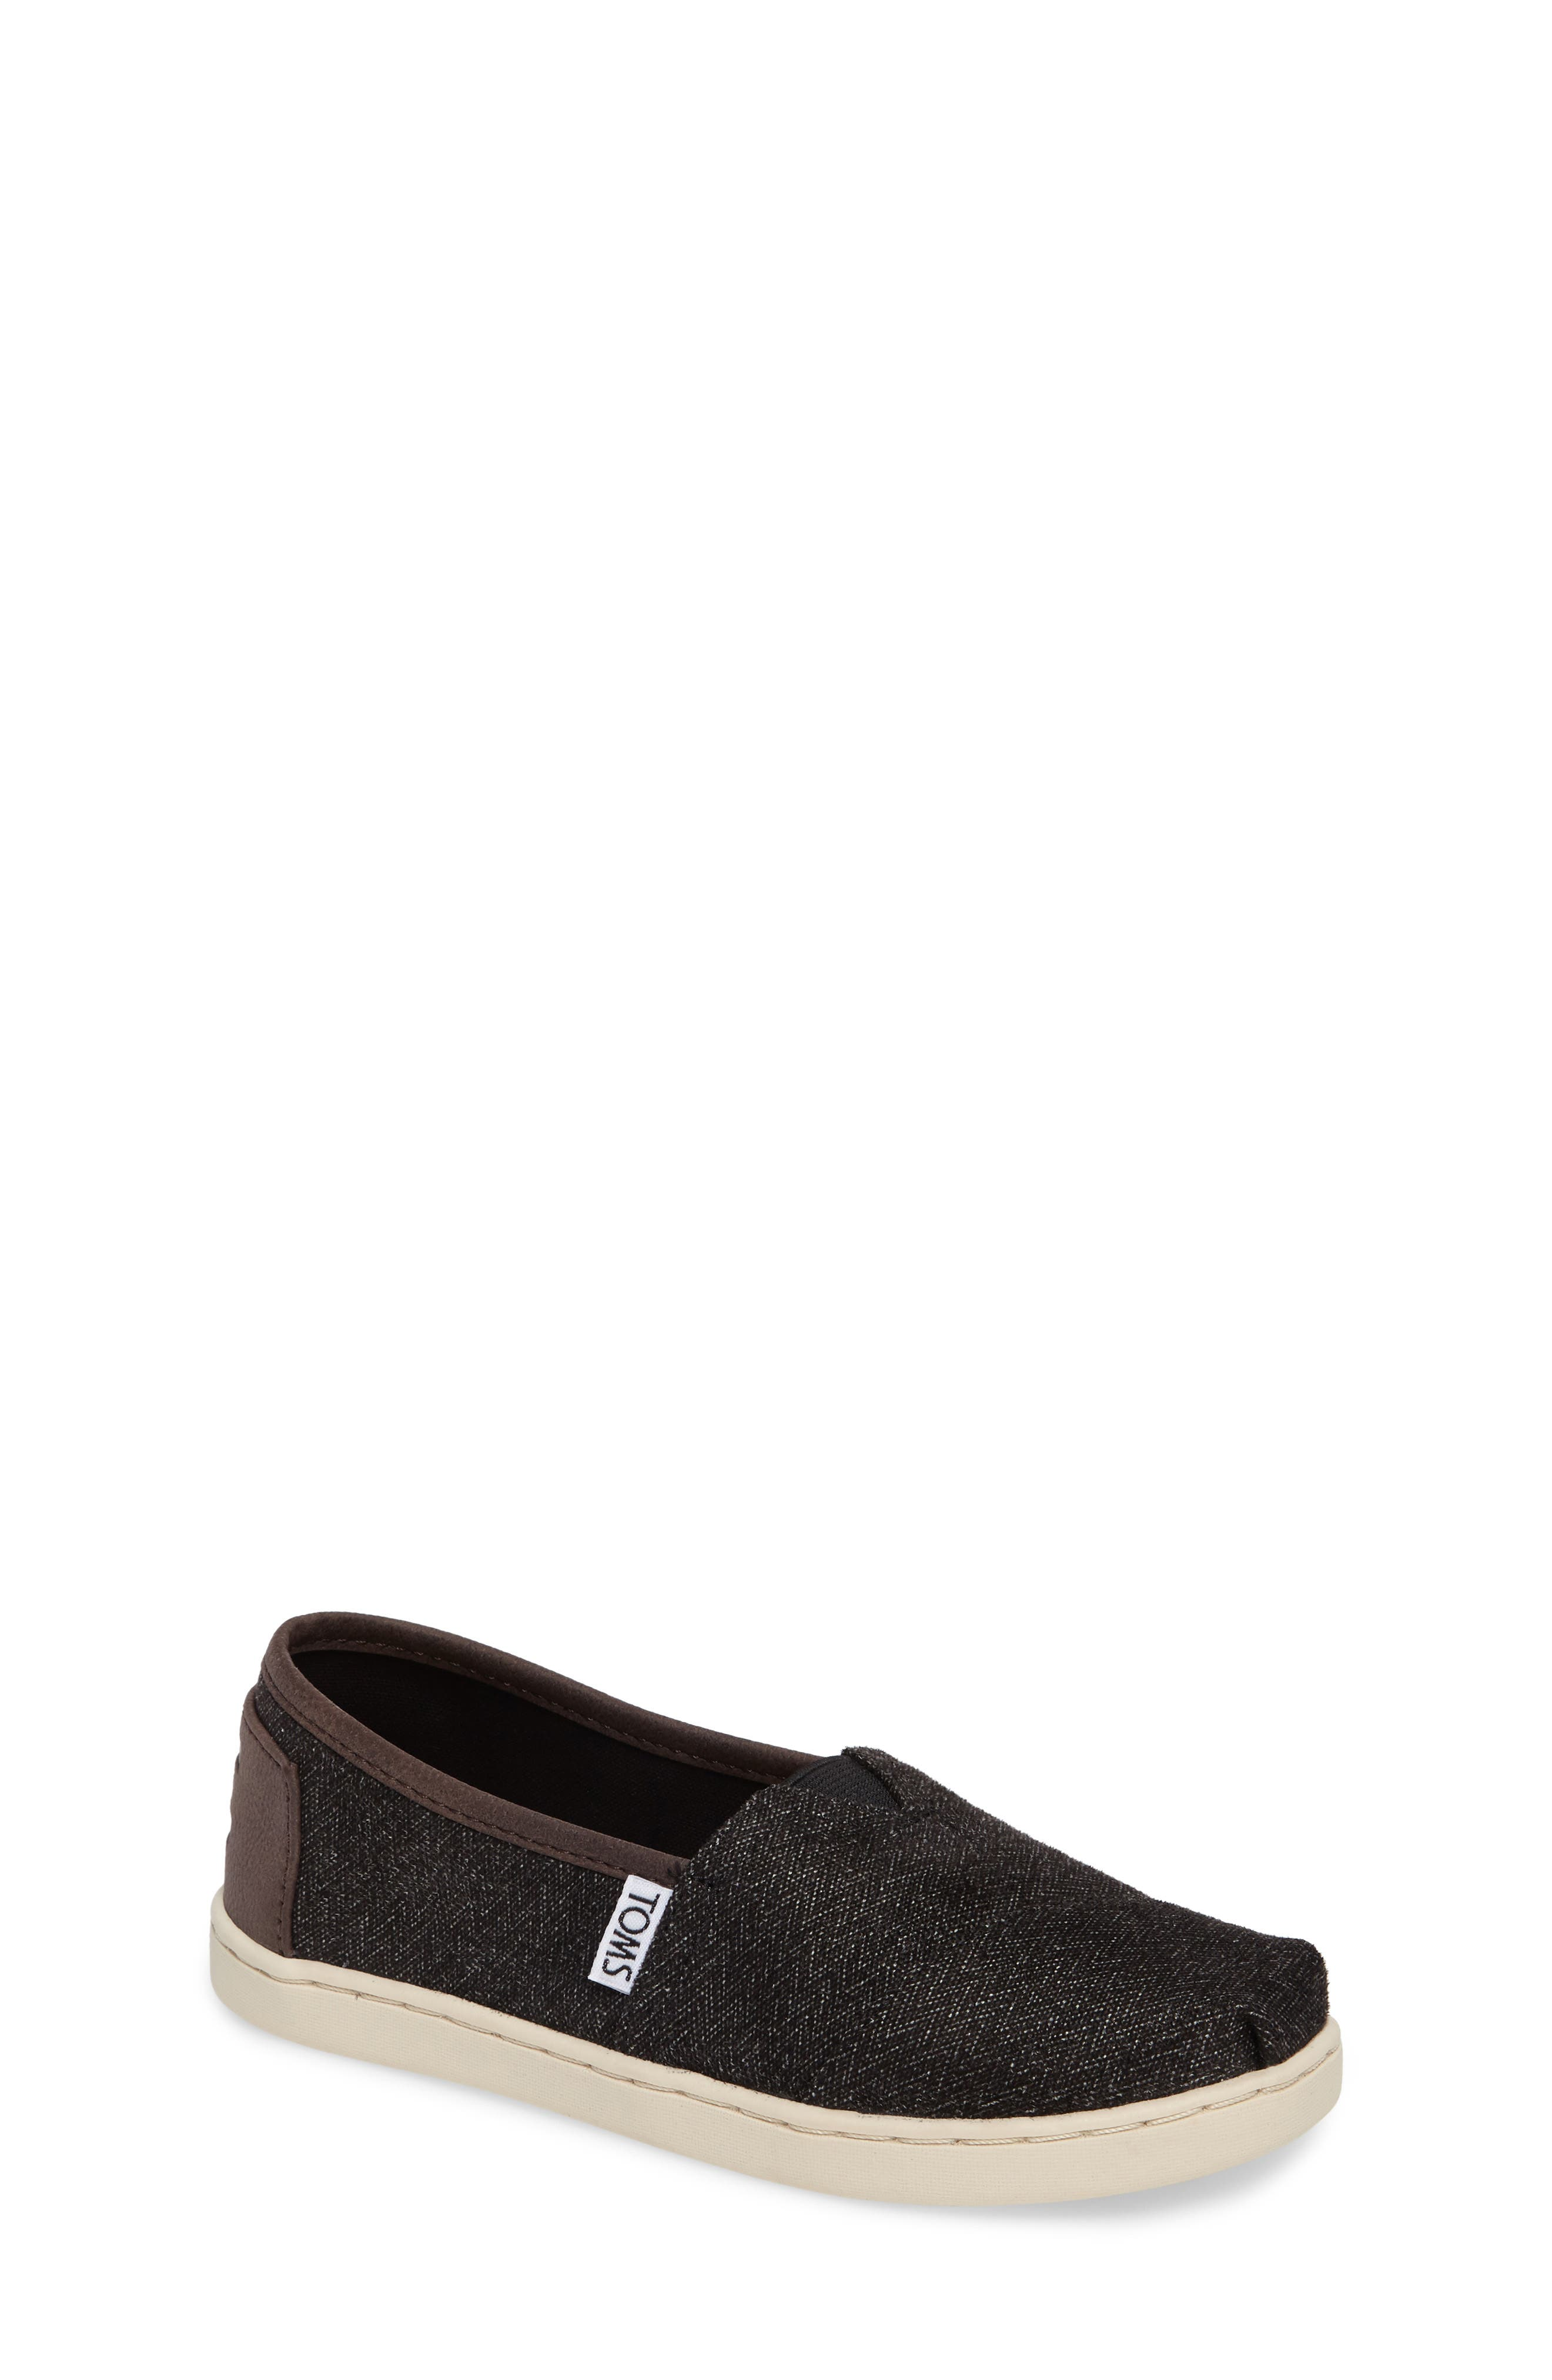 Alternate Image 1 Selected - TOMS Herringbone Slip-On Sneaker (Toddler, Little Kid & Big Kid)